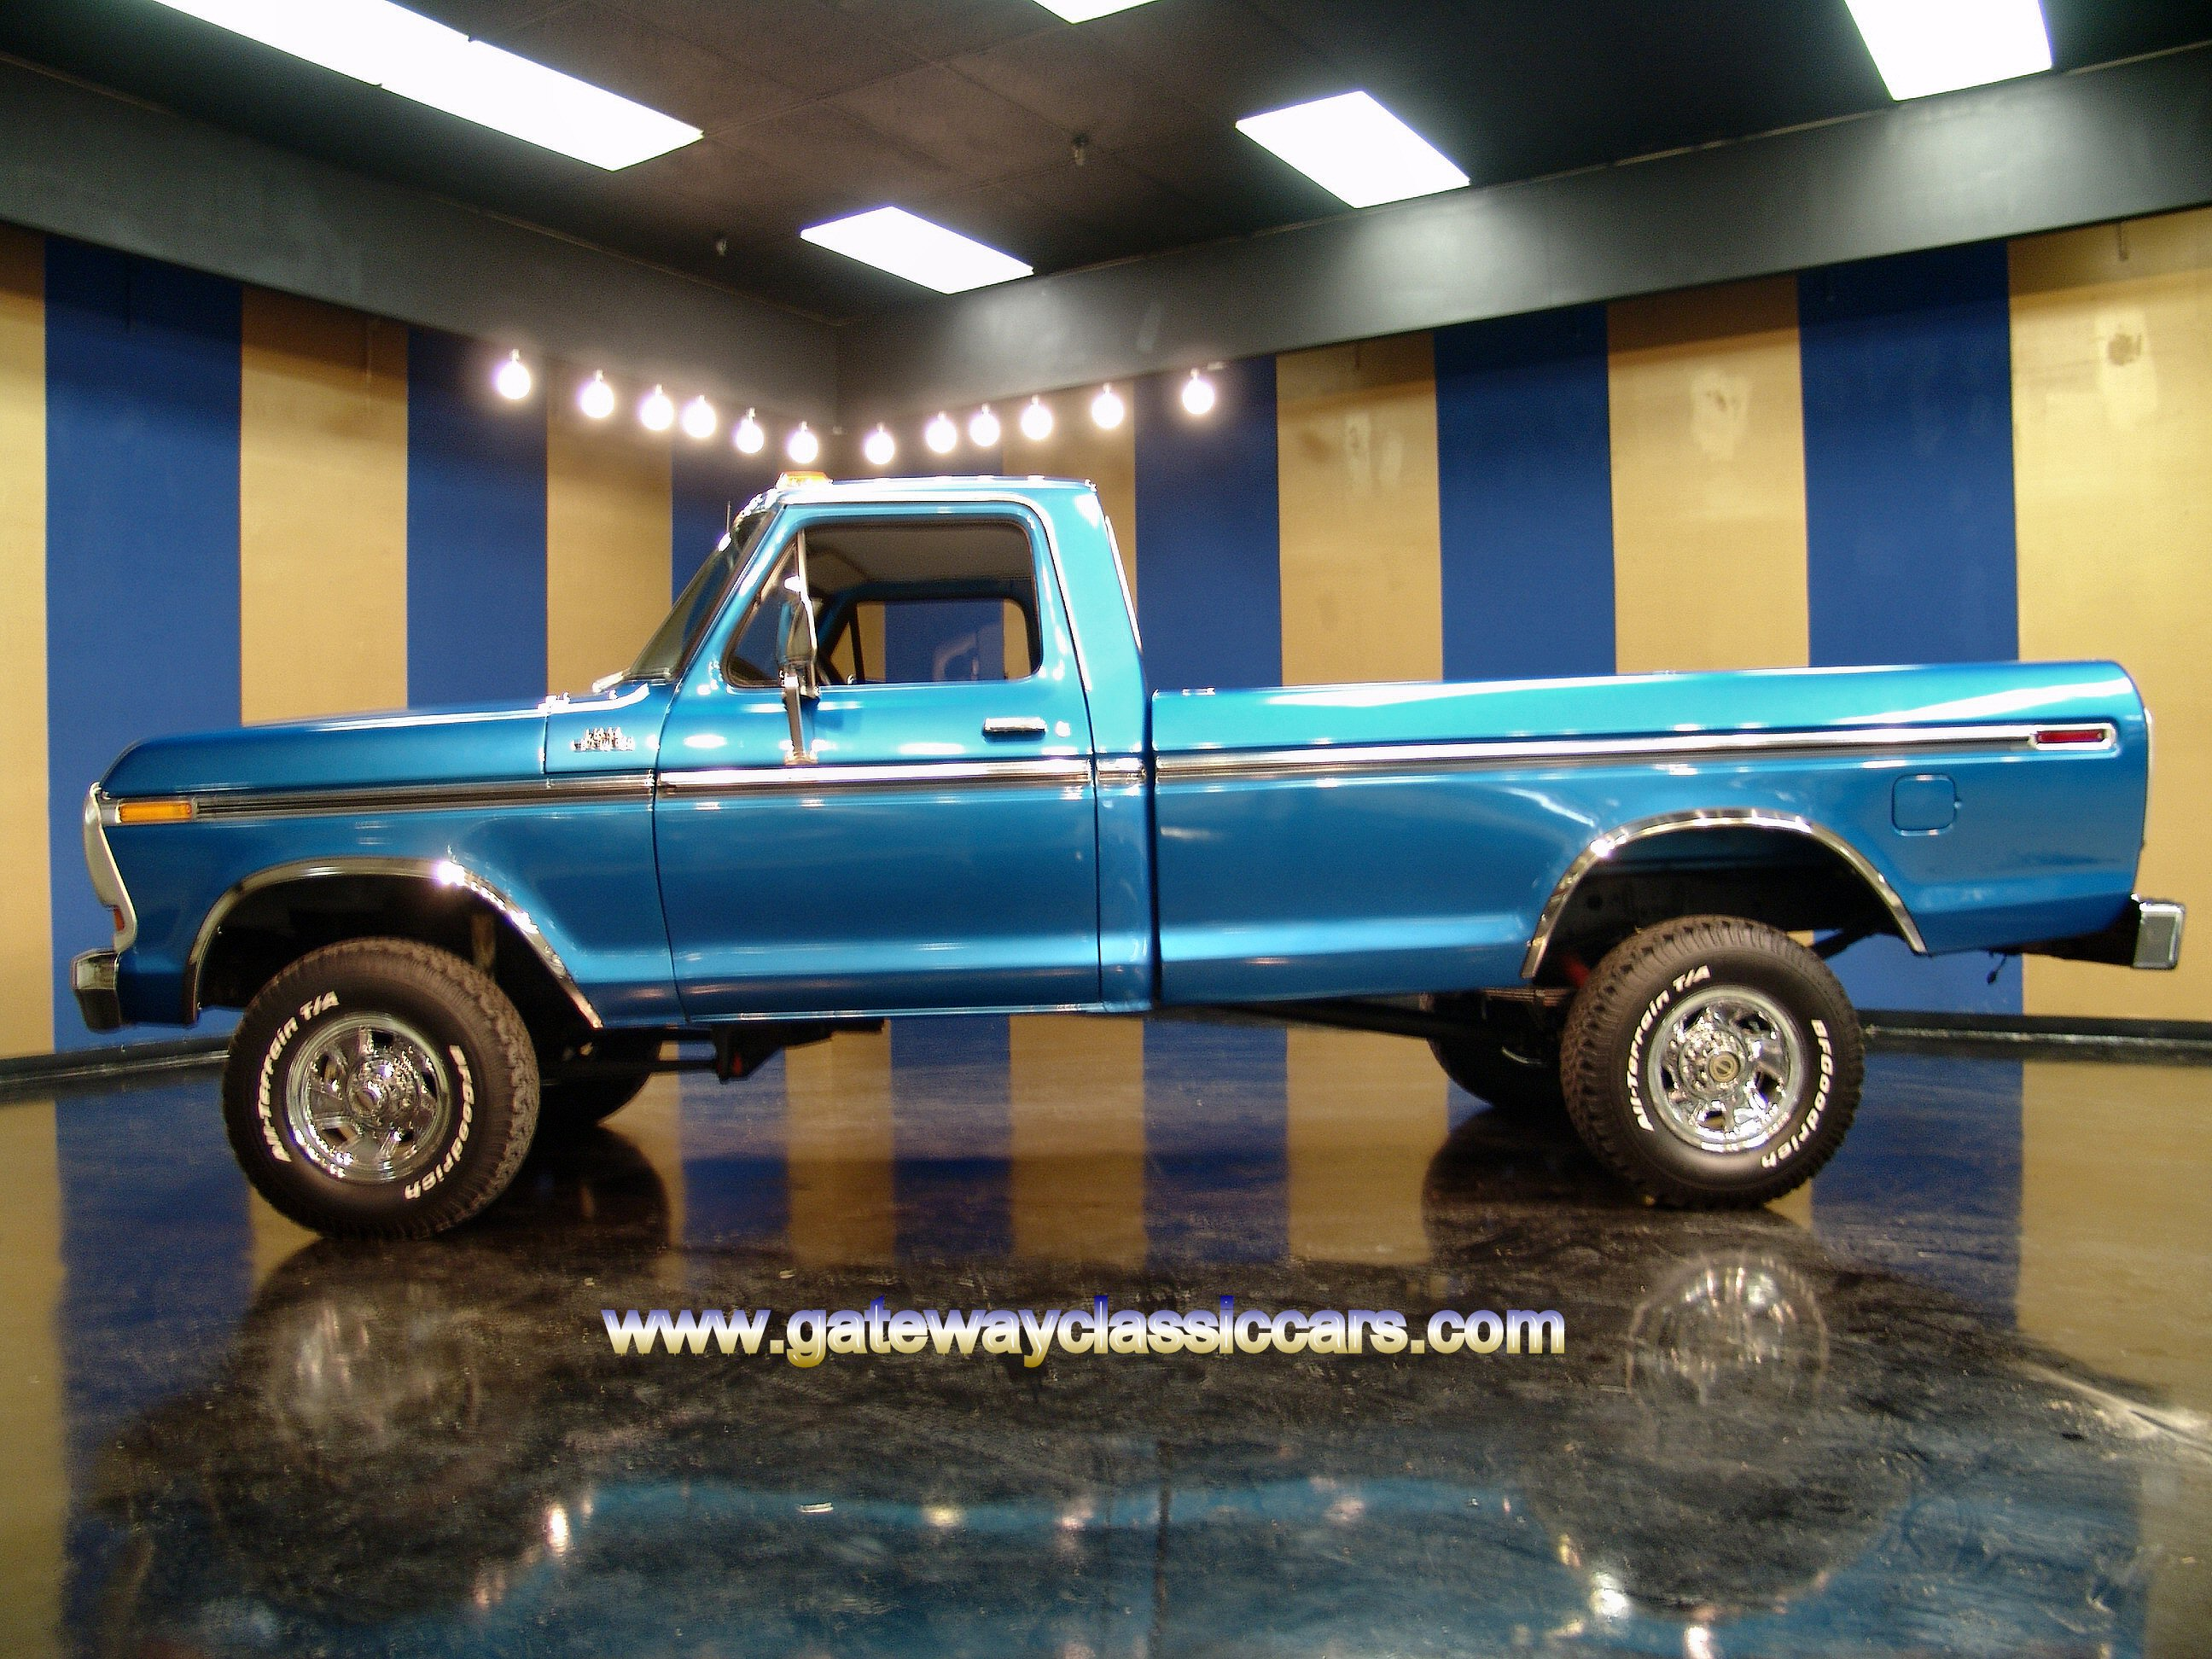 Ford F 150 Hd Wallpaper Background Image 2592x1944 Id 125342